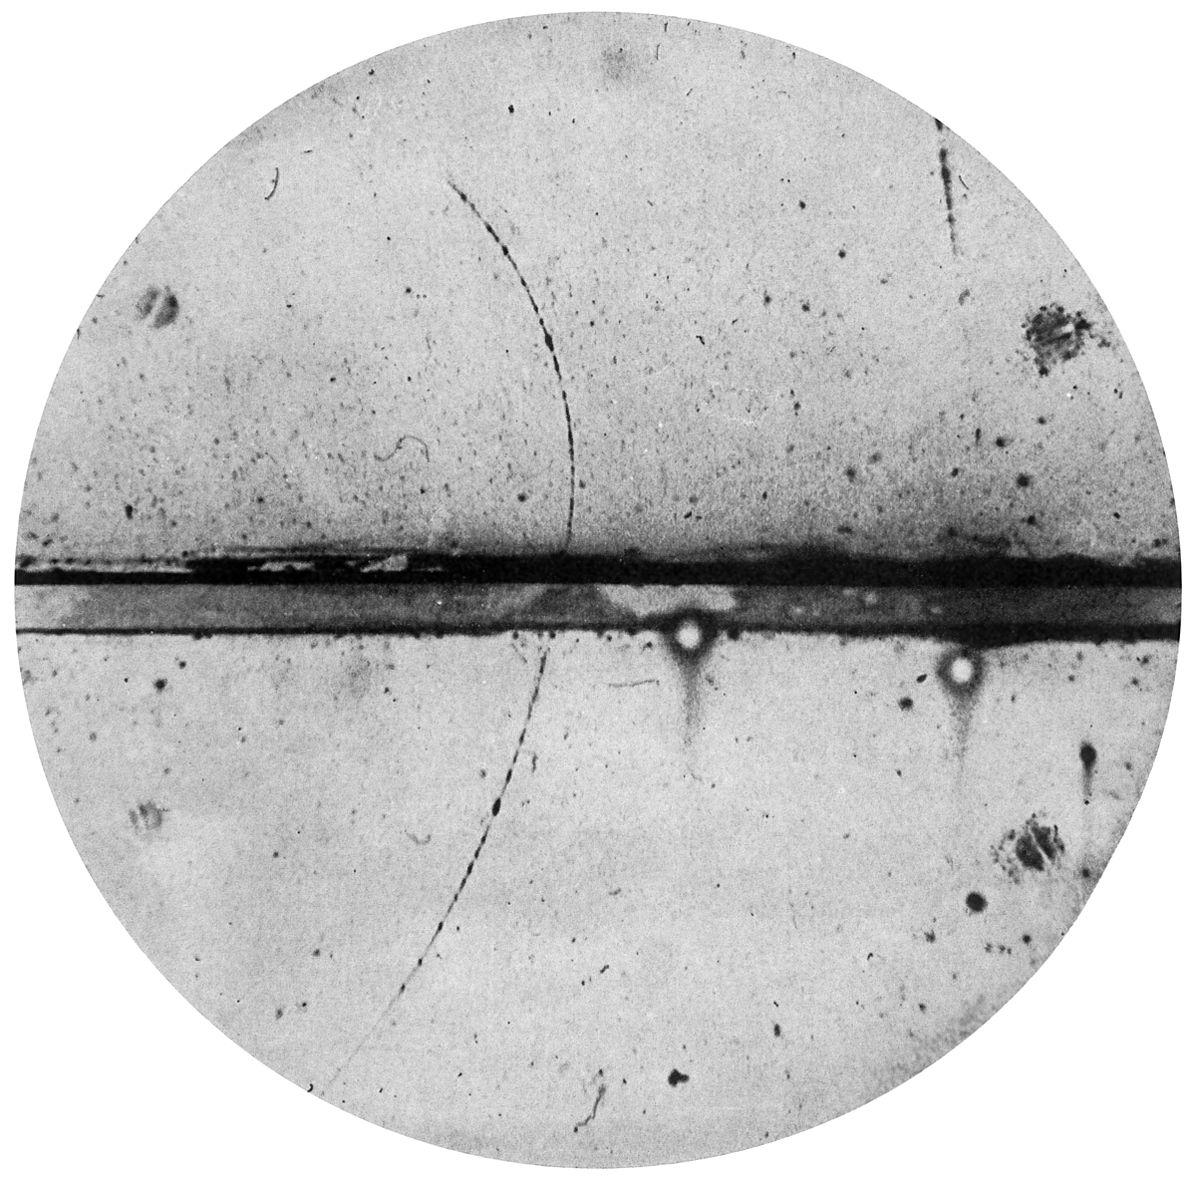 Cloud chamber photograph of the first positron identified by Carl Anderson. The existence of such a particle (the anti-electron) was mentioned in passing by Dirac in his 1931 paper on quantization of electric charge.